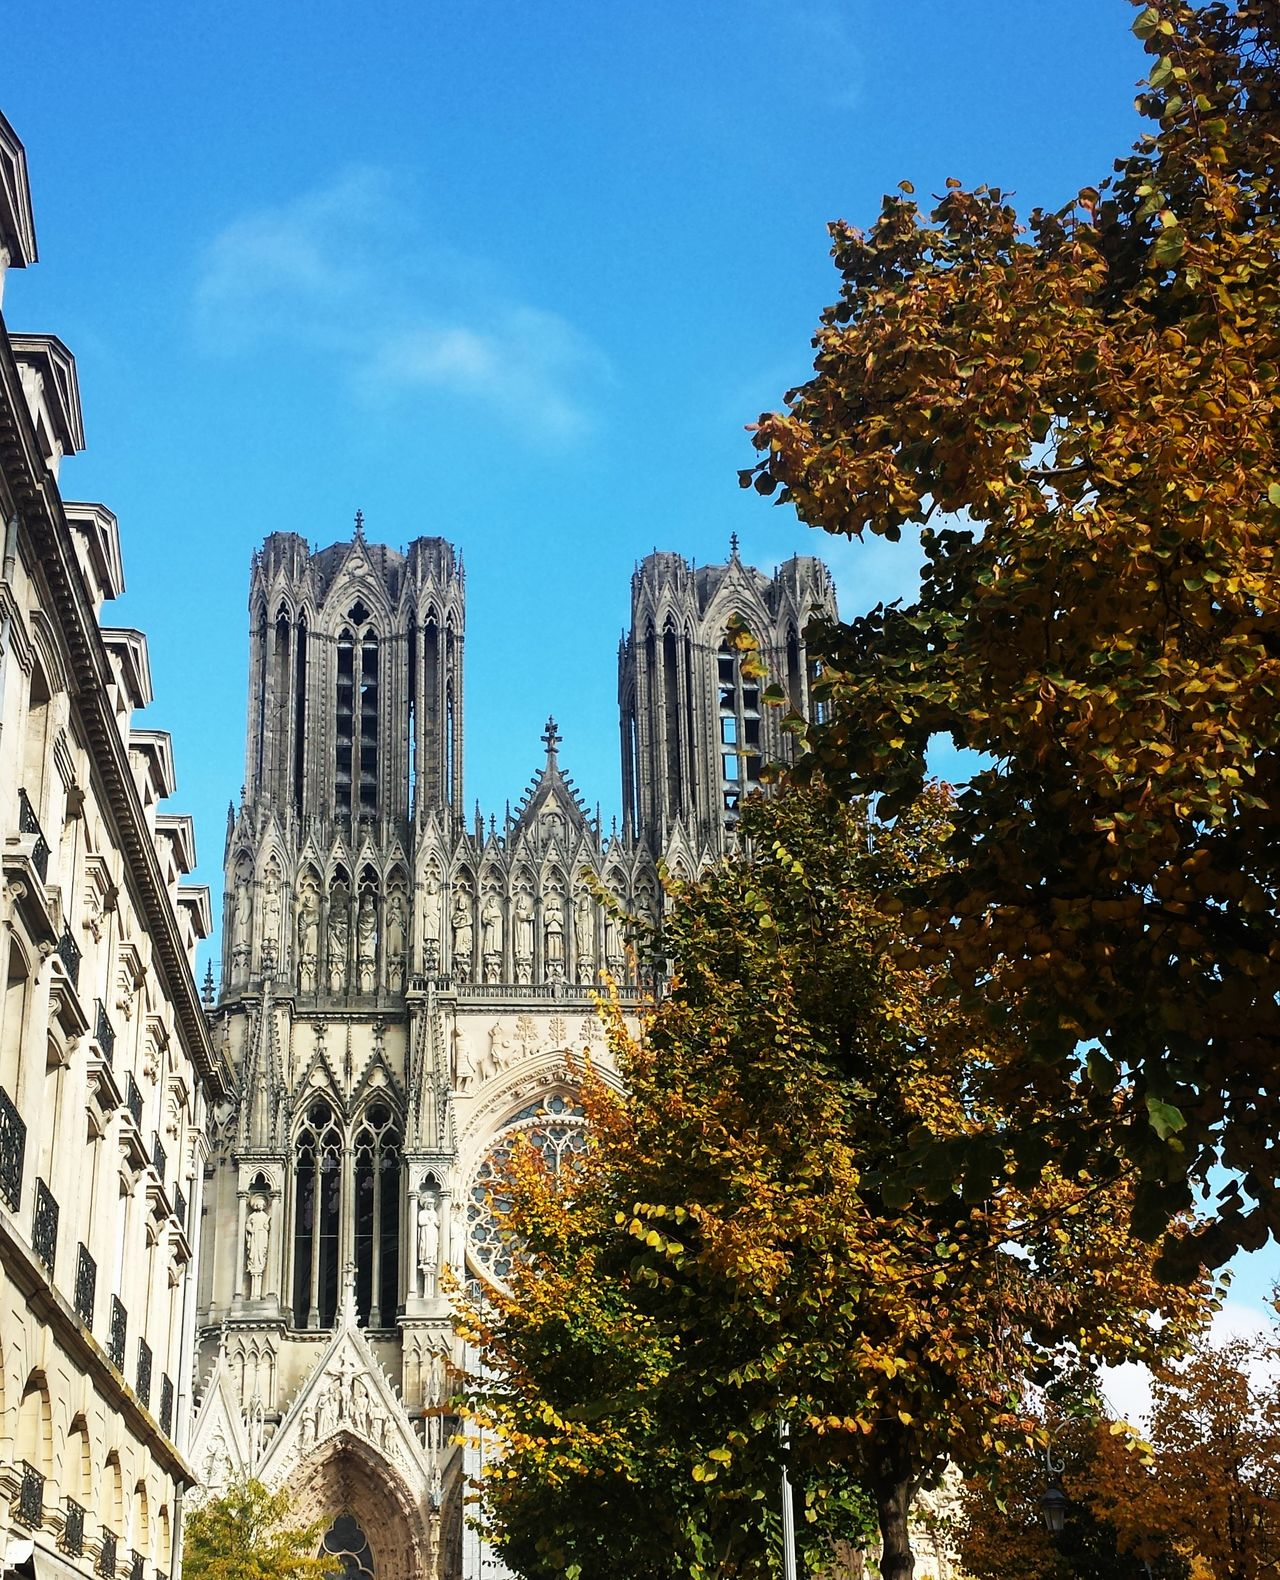 Architecture Architecture Automne Blue Sky Building Exterior Built Structure Cathedralenotredame City Day France Growth Low Angle View No People Outdoors Outdoors Photograpghy  Reims , France Reims Cathedral Sky Travel Destinations Tree